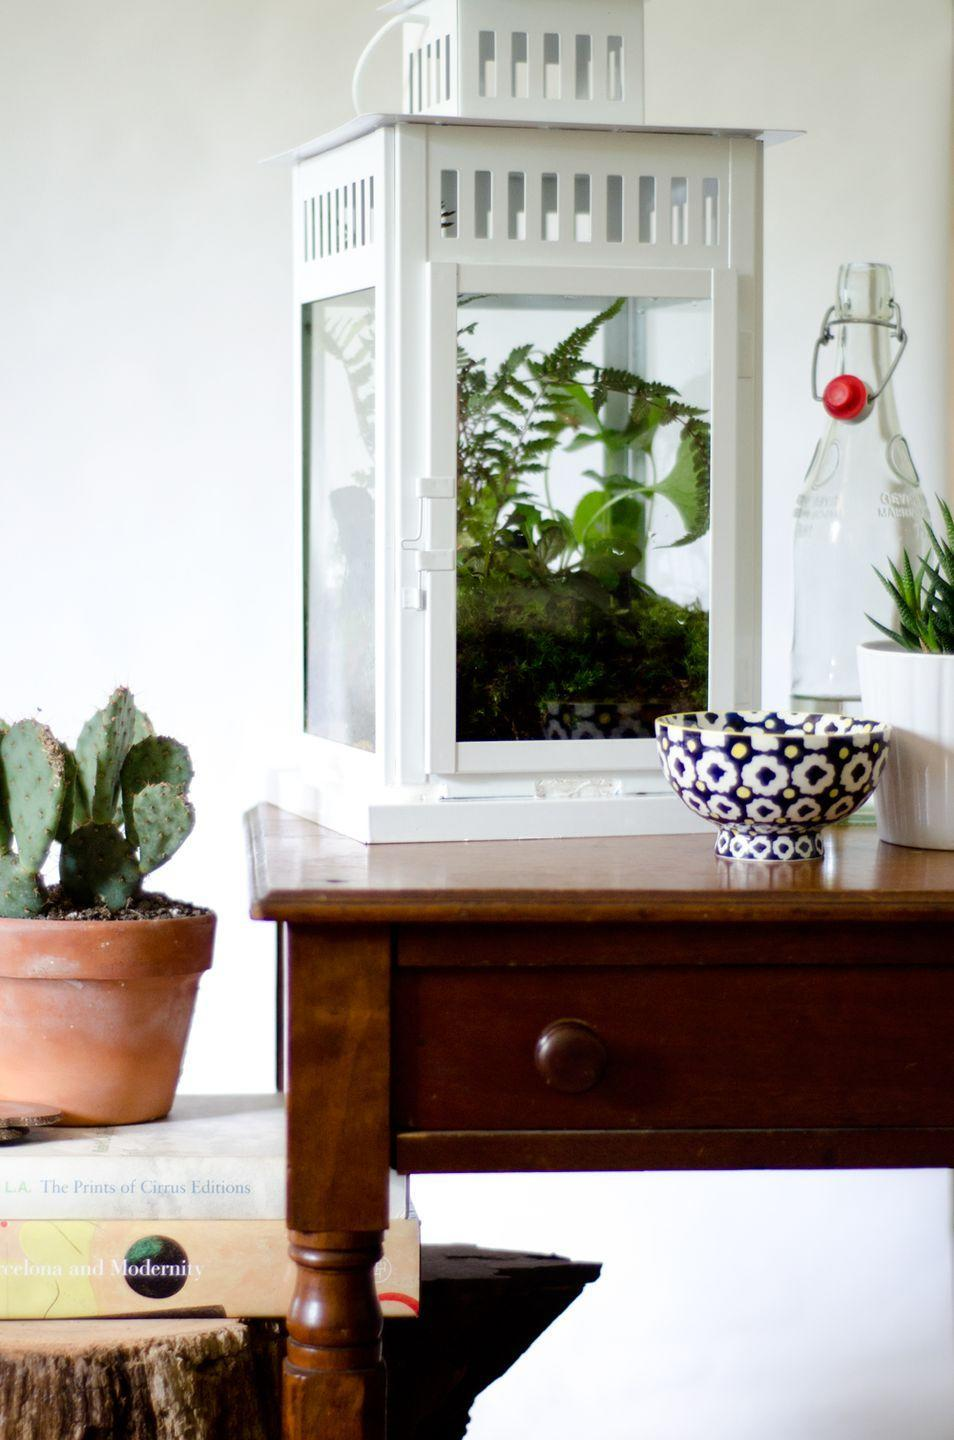 """<p>Potting soil, charcoal, gravel, and plants fill the lantern with an earthy brightness. The result is both decorative and super low maintenance.</p><p>See more at <a href=""""http://www.thouswell.co/ikea-hack-diy-lantern-terrarium/"""" rel=""""nofollow noopener"""" target=""""_blank"""" data-ylk=""""slk:Thou Swell"""" class=""""link rapid-noclick-resp"""">Thou Swell</a>.</p><p><em><em><em><em><a class=""""link rapid-noclick-resp"""" href=""""https://www.amazon.com/Exotic-Pebbles-PMS0510-Polished-Gravel/dp/B006MKZHFU/?tag=syn-yahoo-20&ascsubtag=%5Bartid%7C2089.g.29514474%5Bsrc%7Cyahoo-us"""" rel=""""nofollow noopener"""" target=""""_blank"""" data-ylk=""""slk:BUY NOW"""">BUY NOW</a> <strong>Gravel, $12, <span class=""""redactor-unlink"""">amazon.com</span></strong></em></em></em></em></p>"""